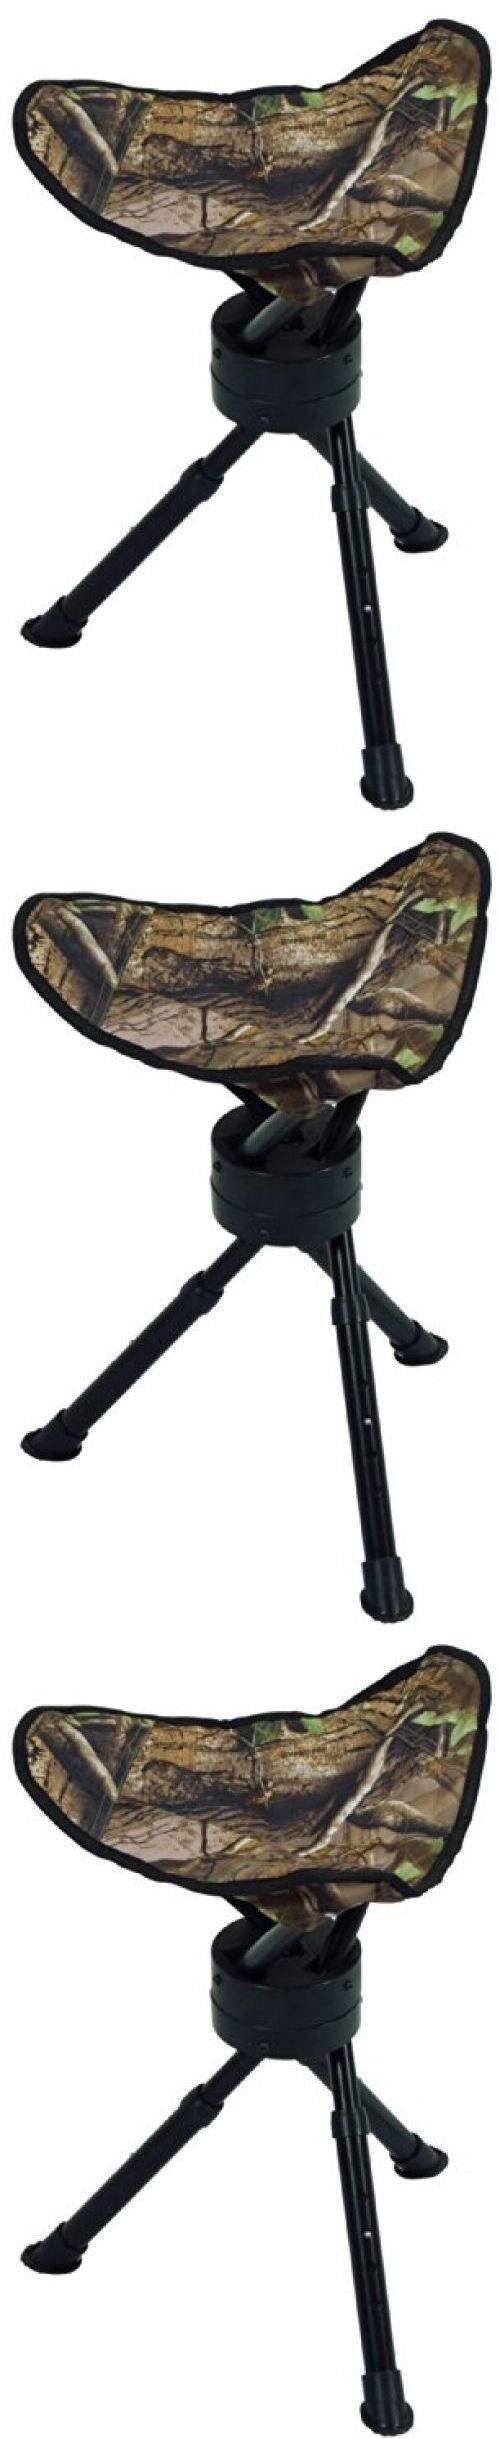 Seats and Chairs 52507: Hunting Stool Chair Tripod Swivel Camo Portable Compact Deer Tree Stand Seat BUY IT NOW ONLY: $31.68